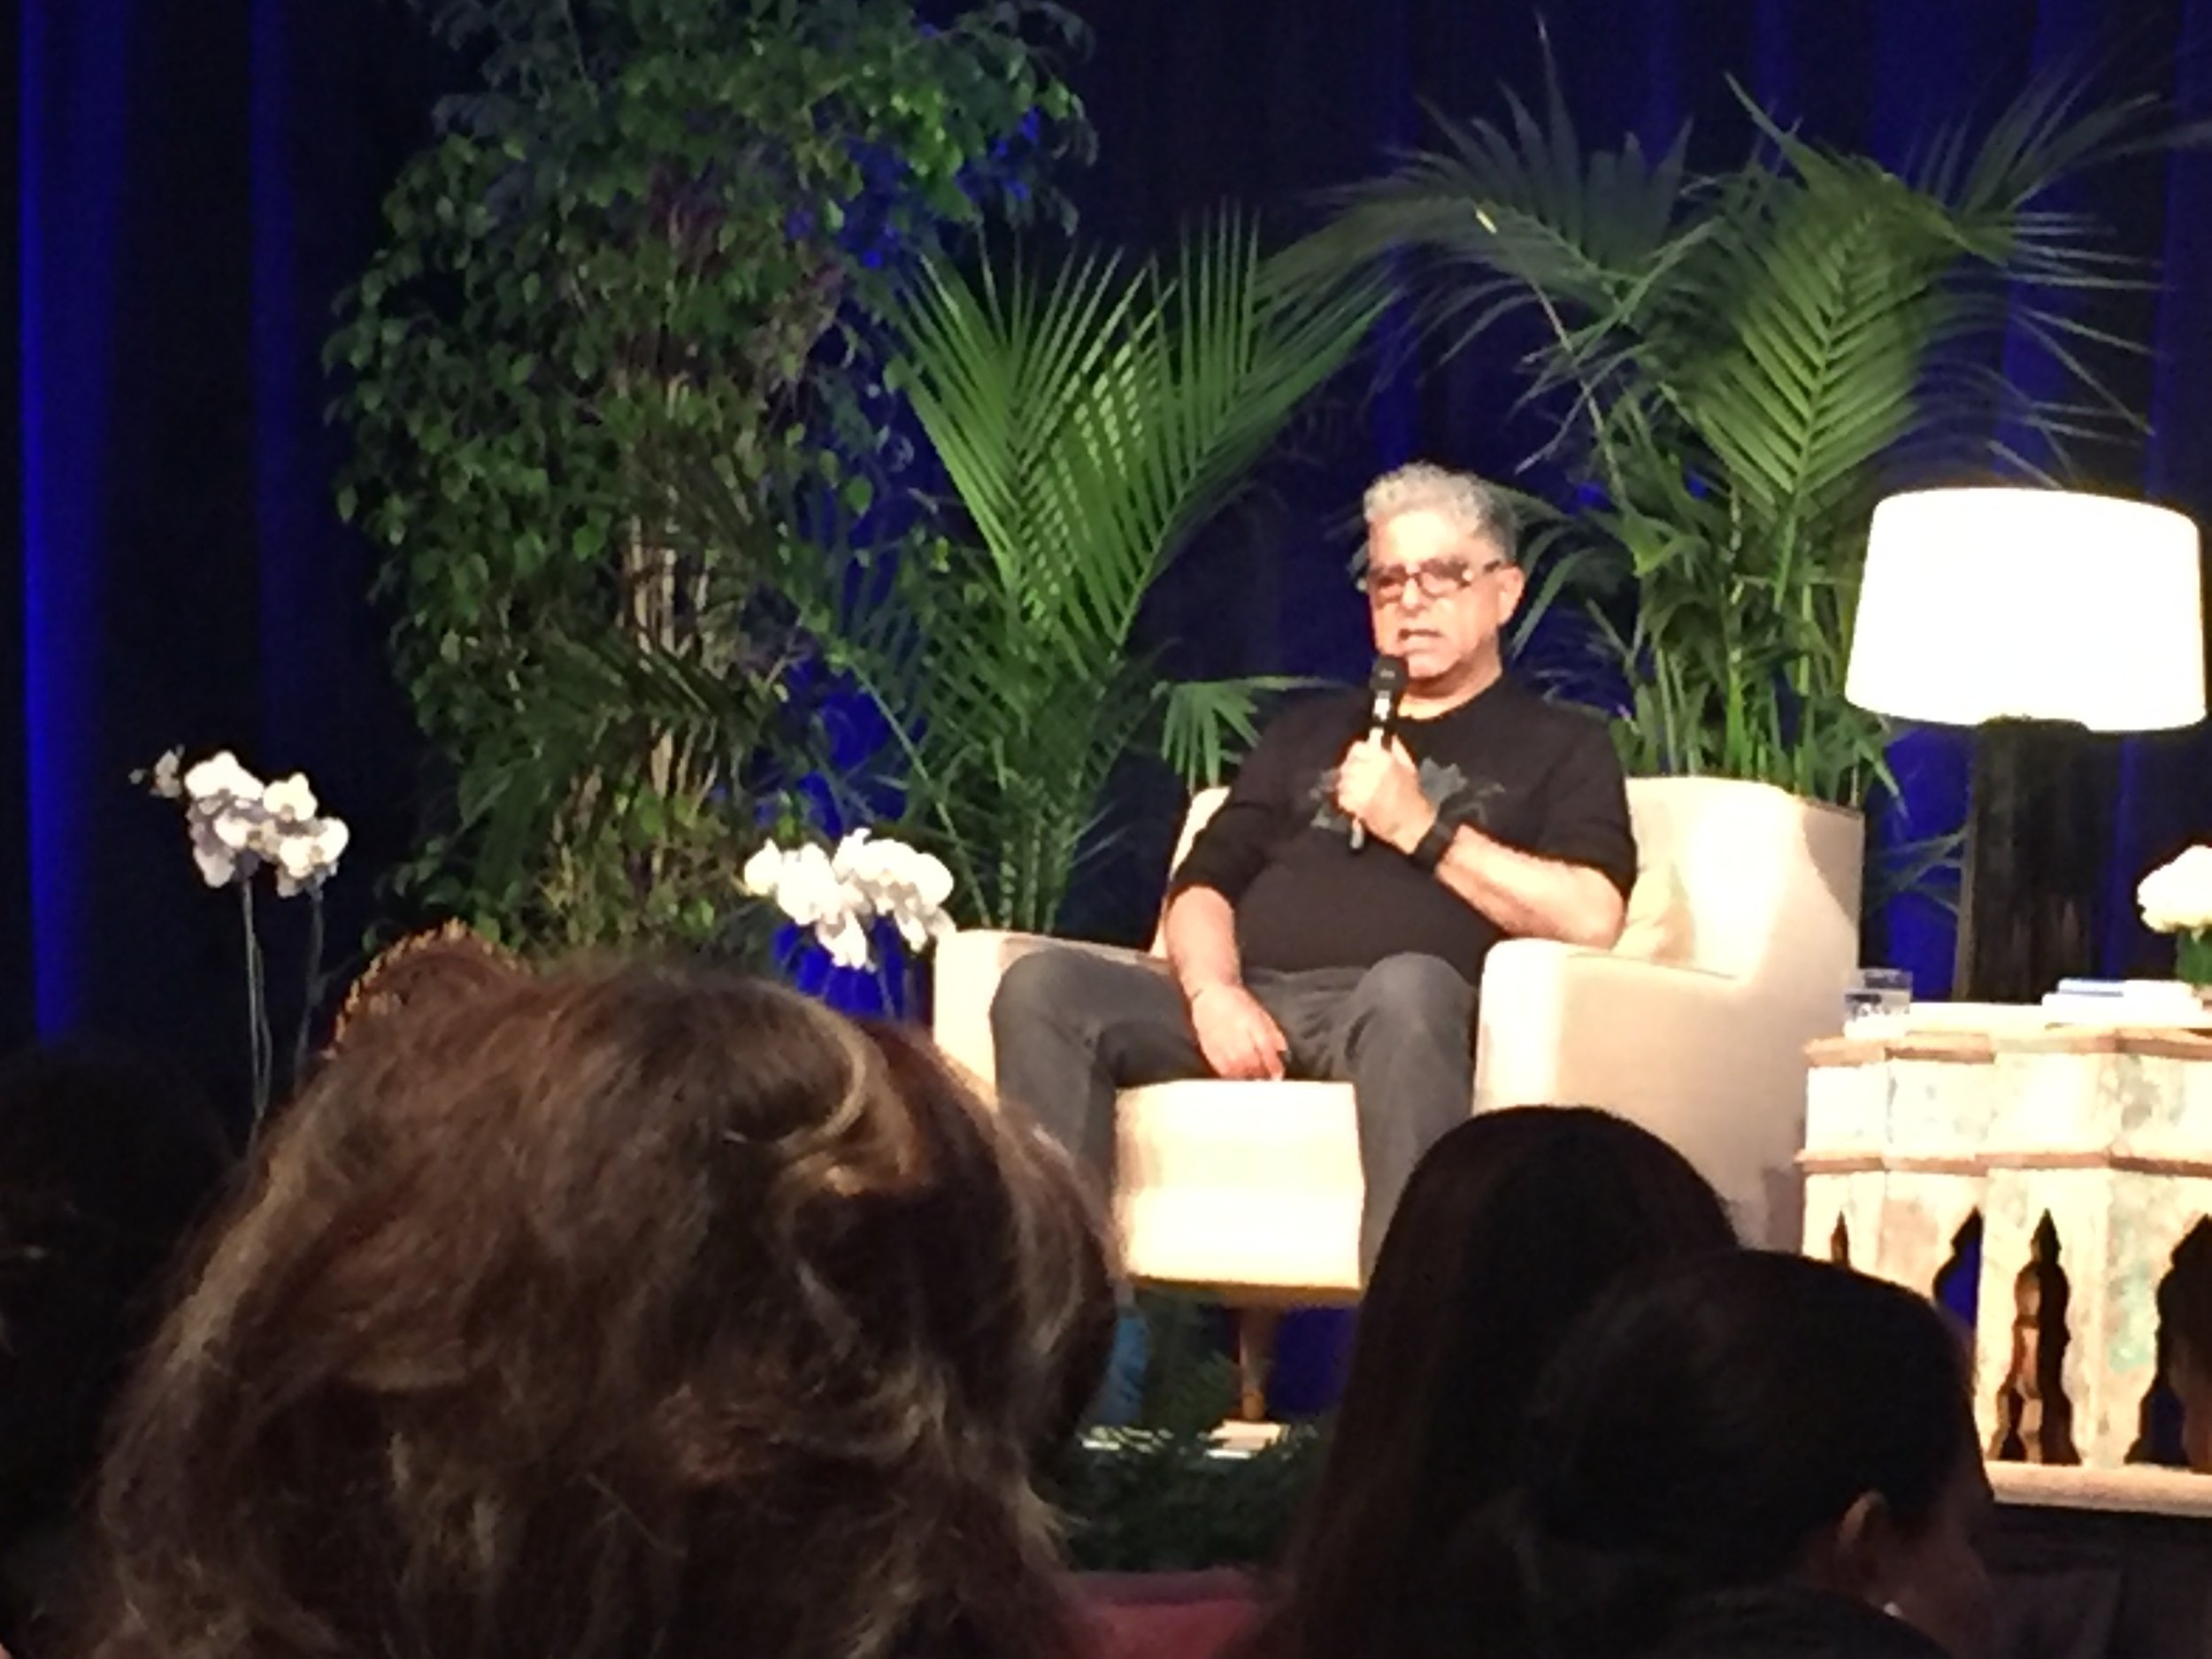 Deepak Chopra himself!